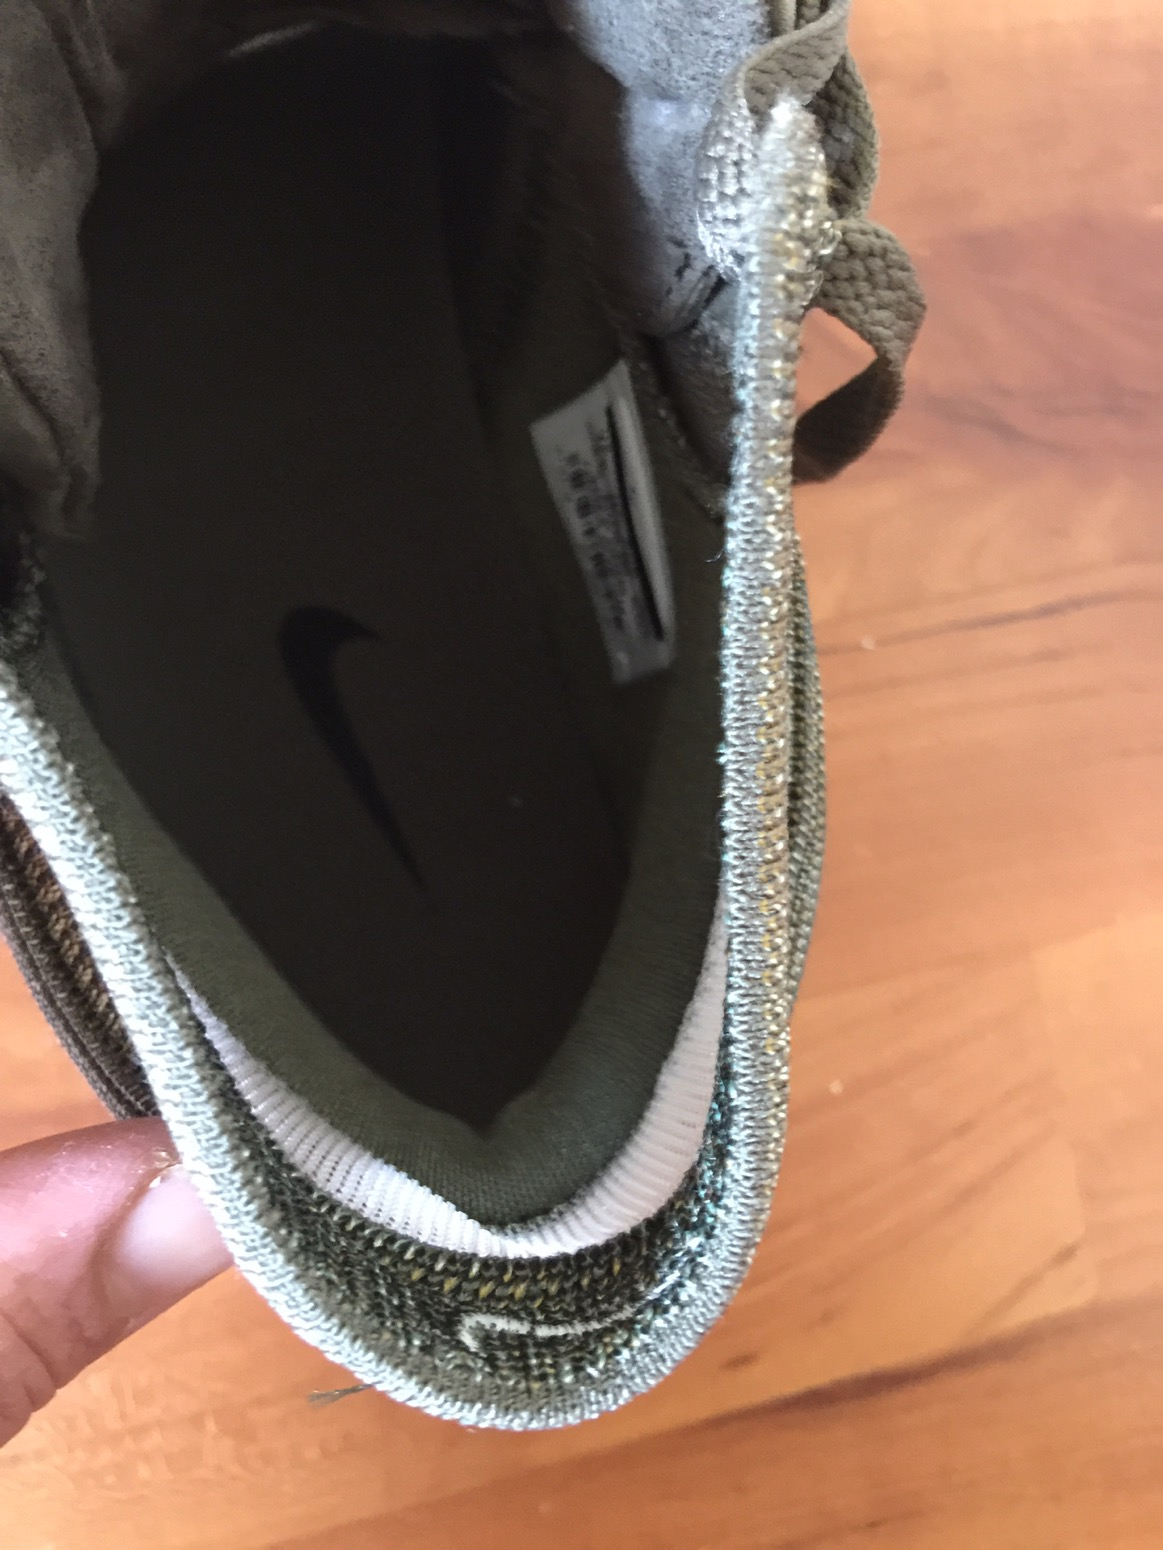 368a20d3fc27 It is extremely thin and flexible and almost independent of the entire  shoe. You can see the mesh cut out in the pics above that adds even more  flexibility.